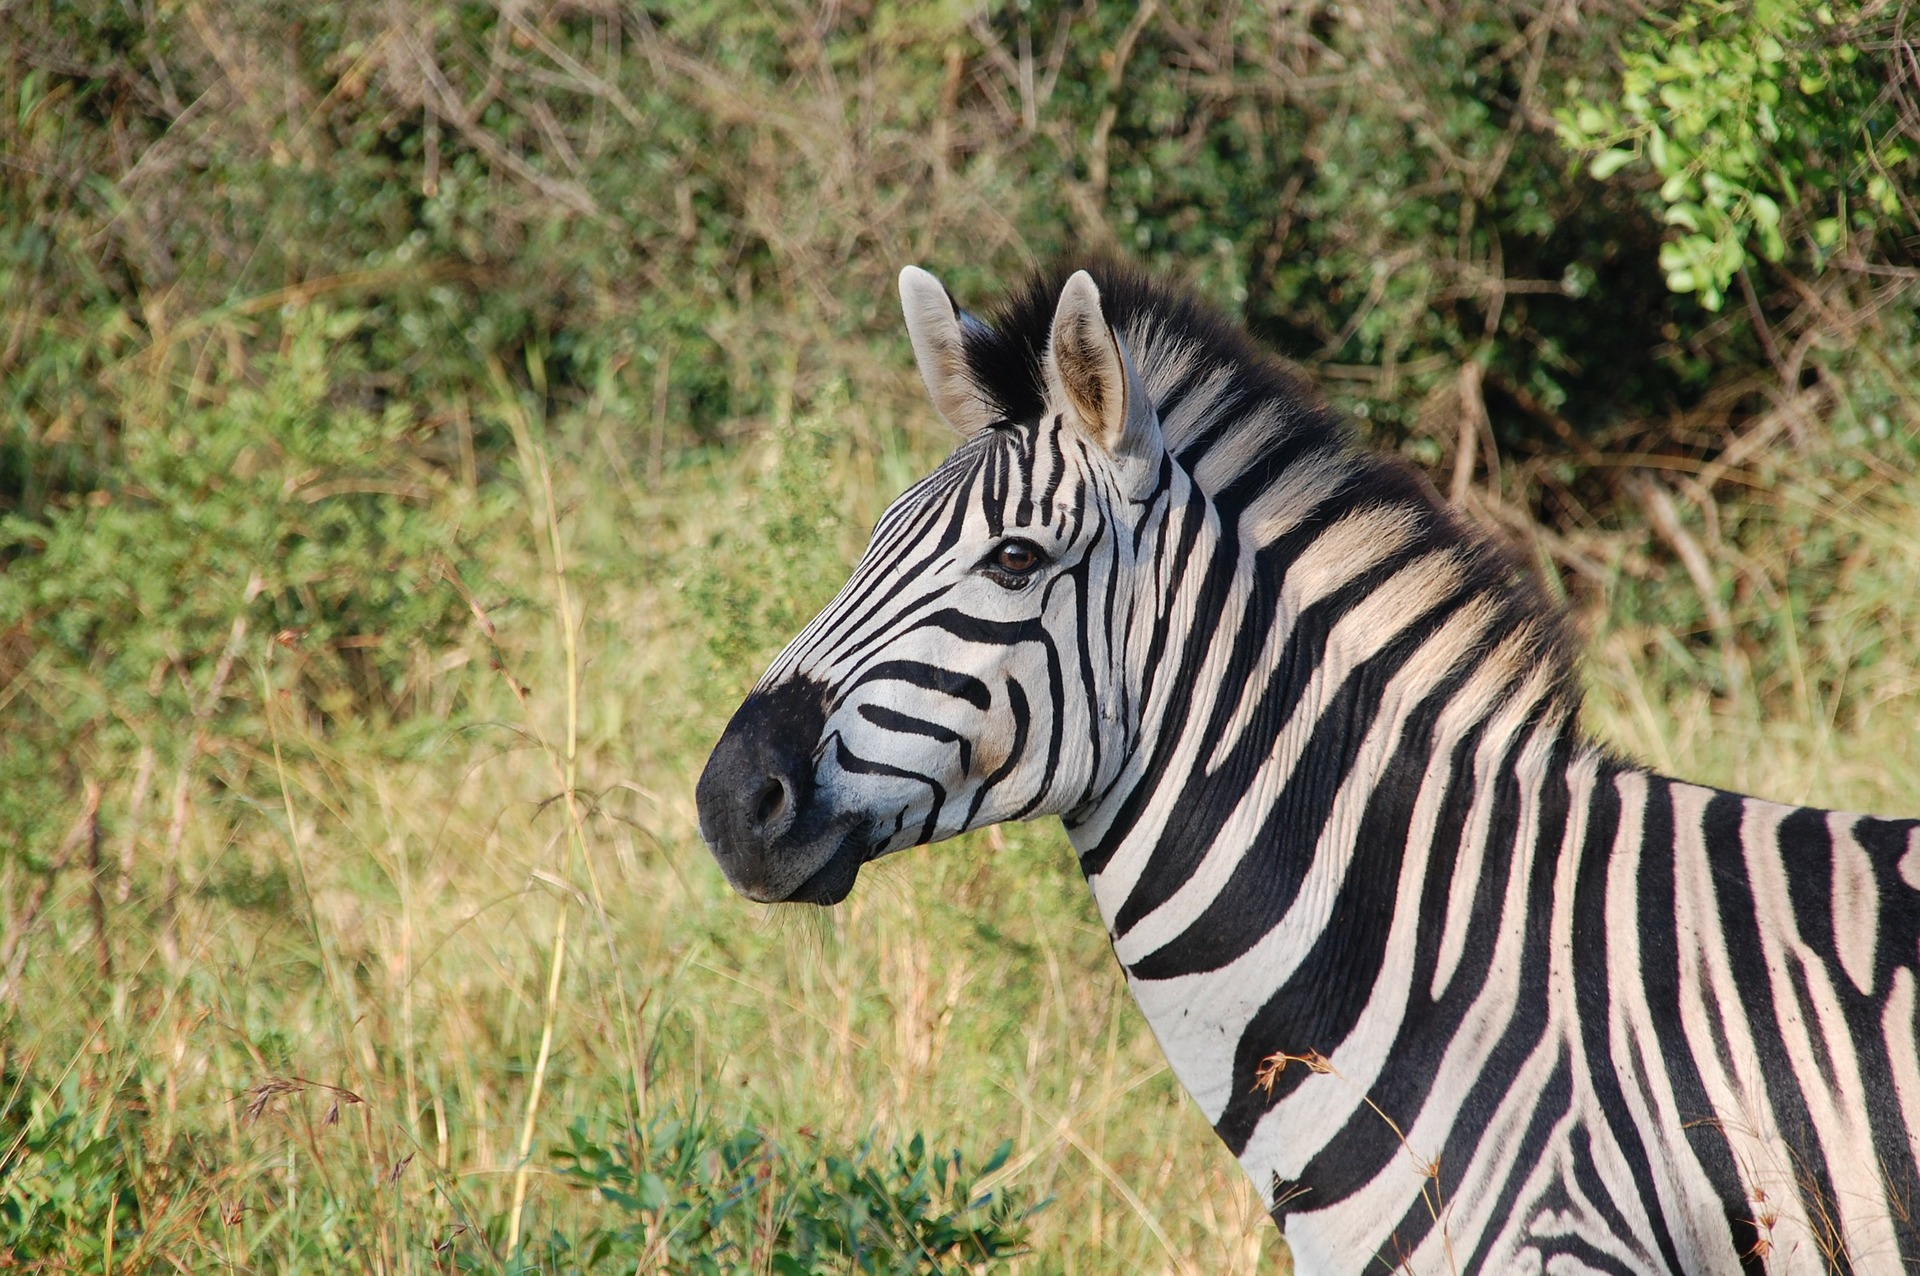 Zebra Foundation Grants Available for Zoological Medicine Research